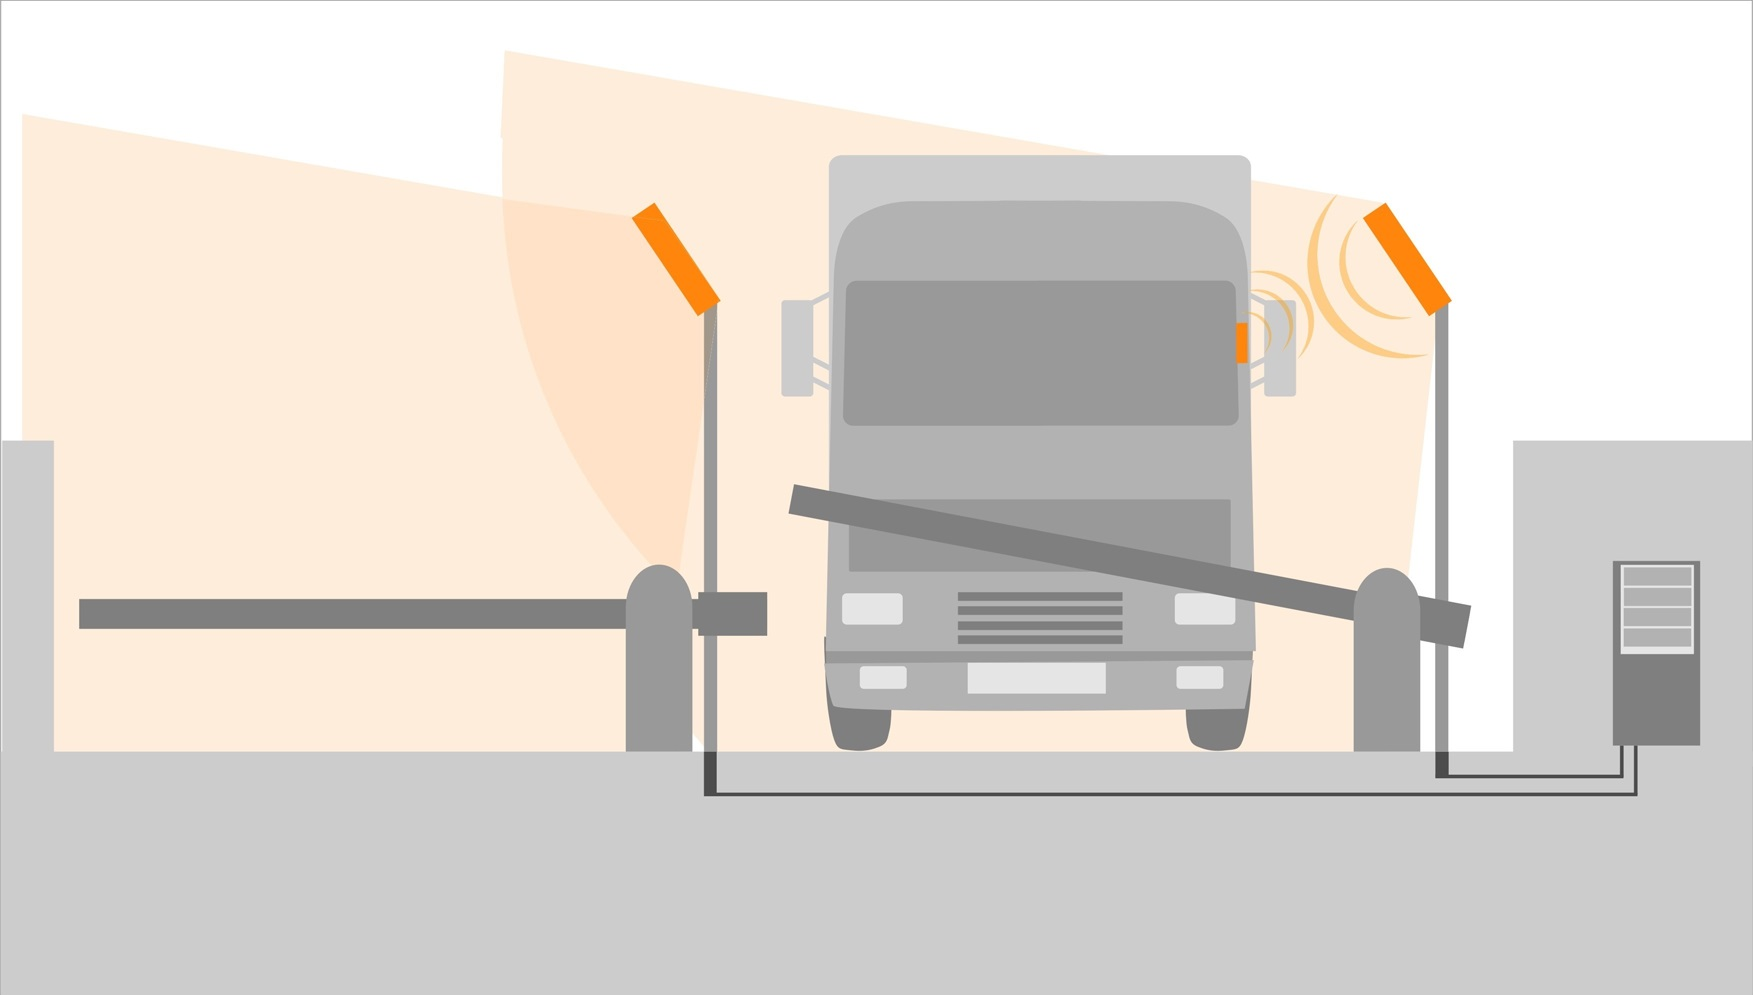 RFID for truck monitoring